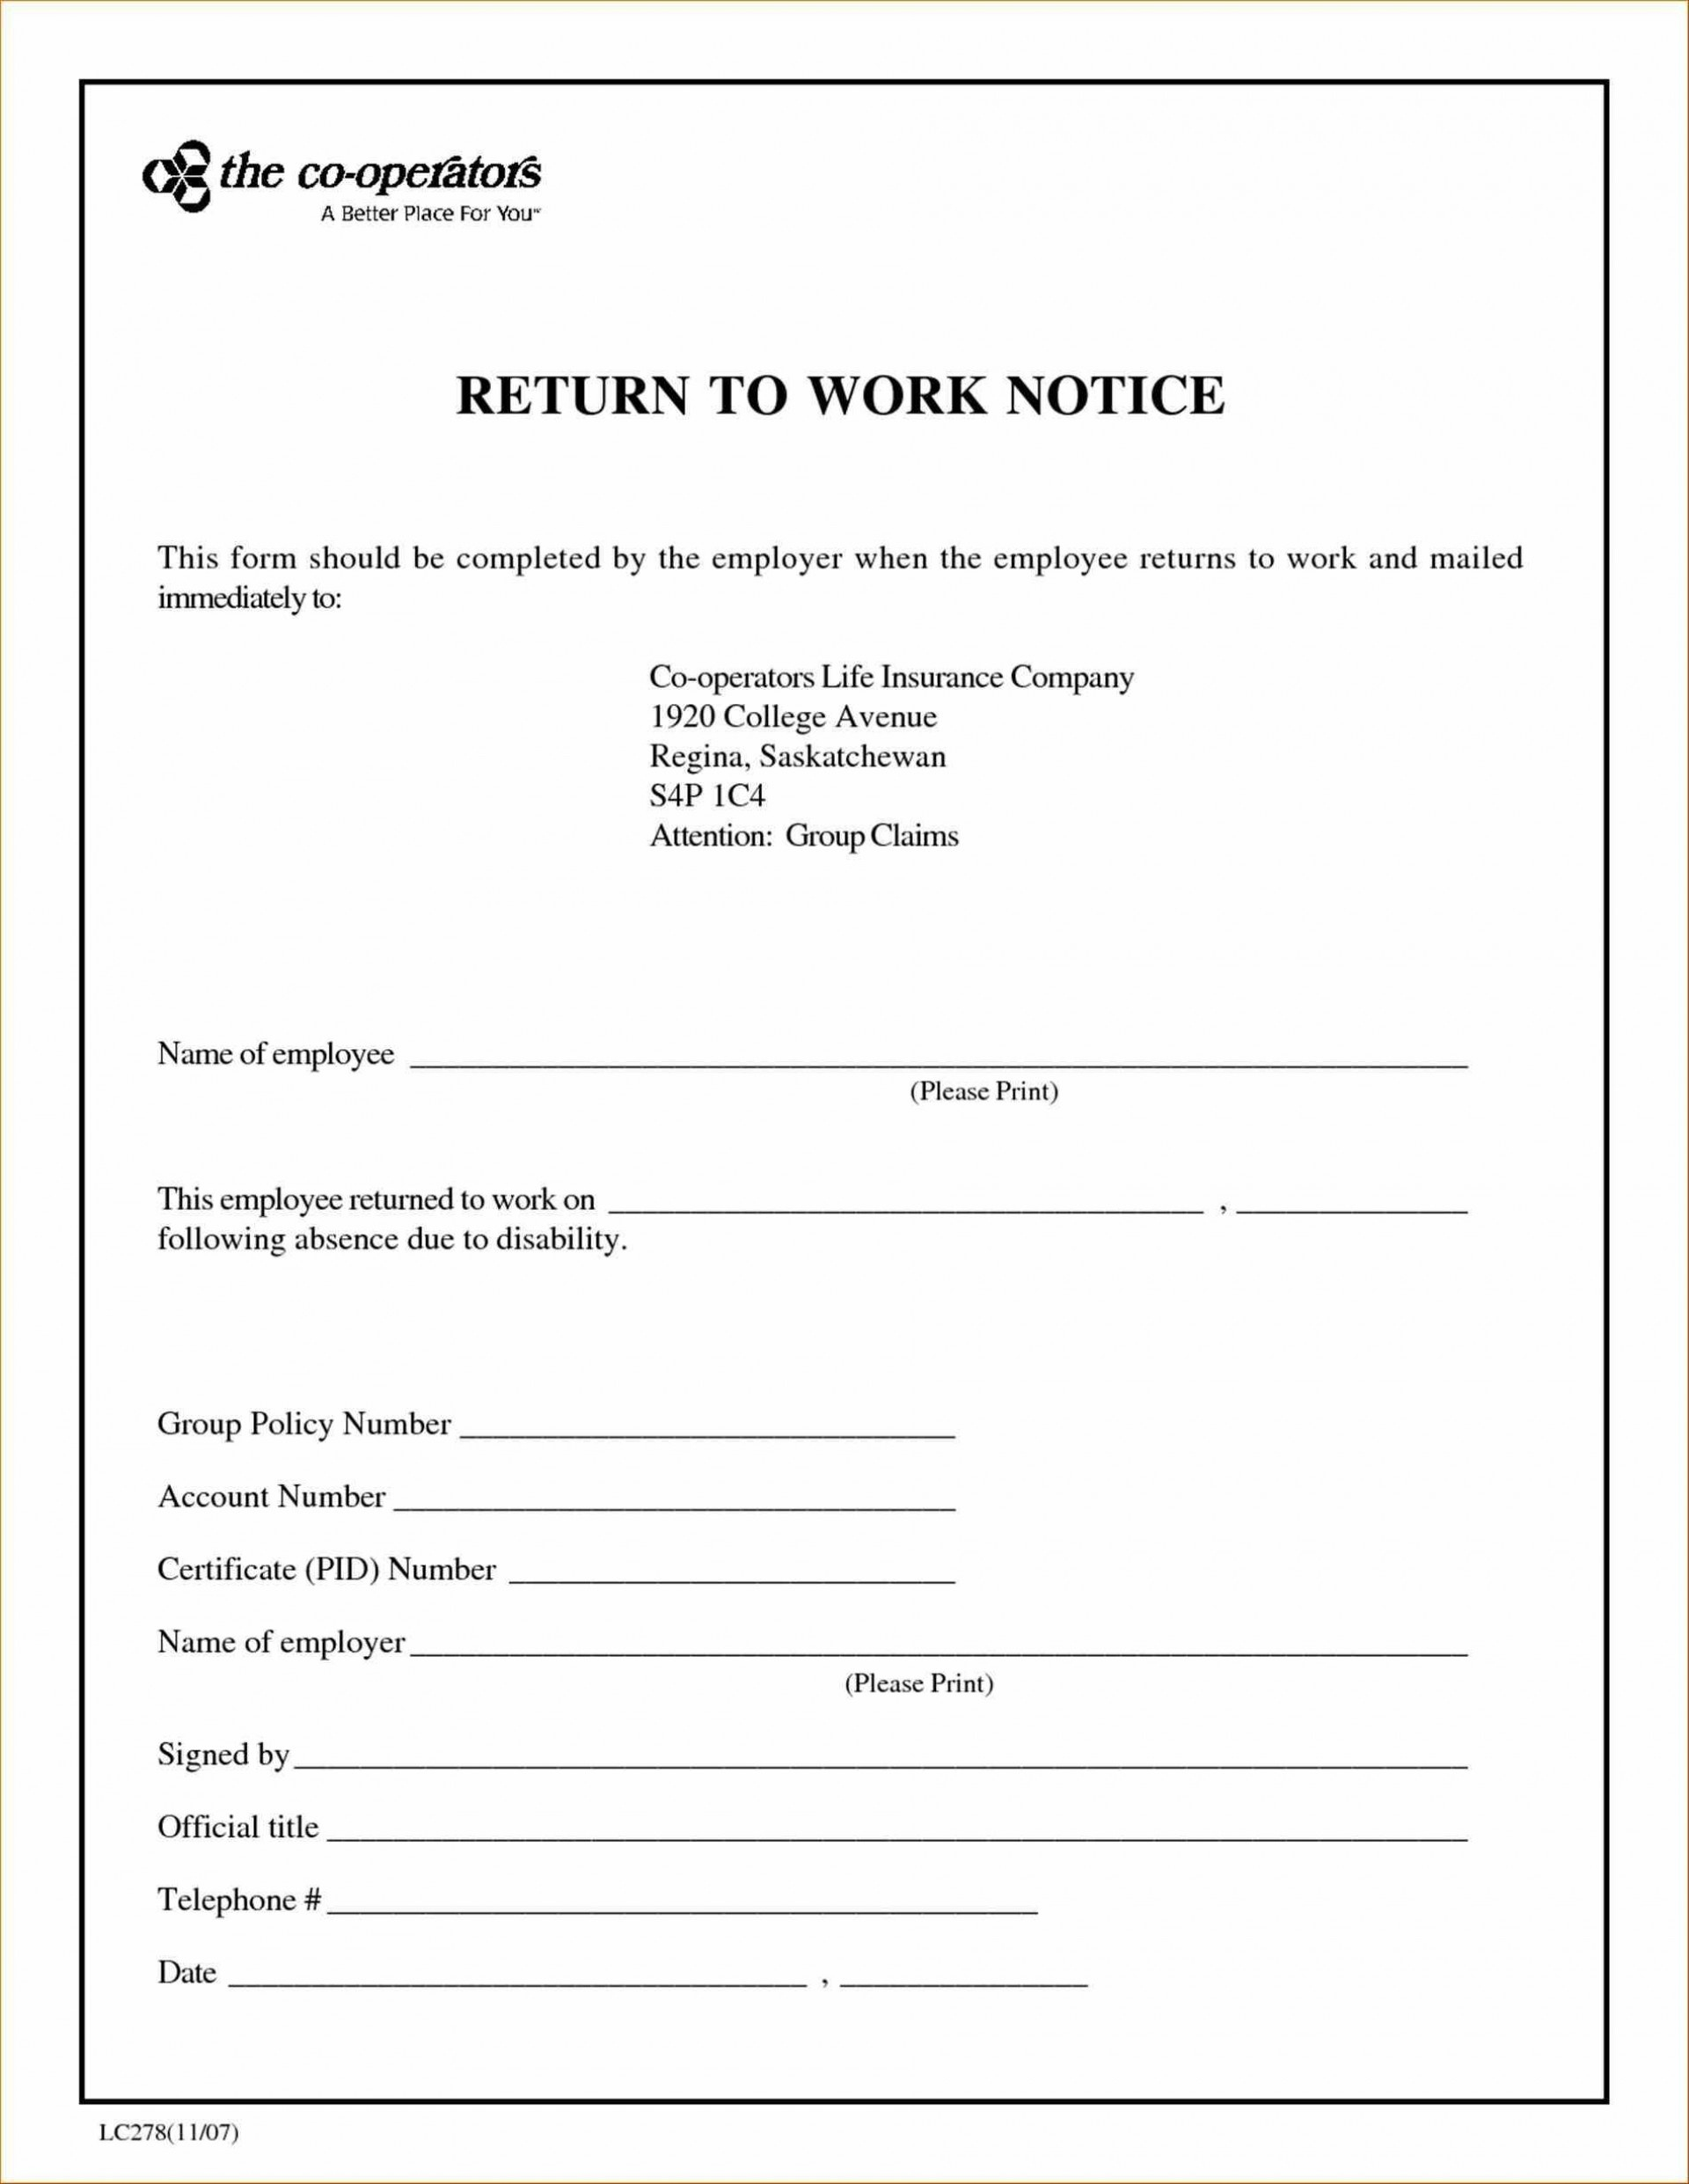 016 Doctors Note Template Free Download Ideas Amazing ~ Nouberoakland - Doctor Notes For Free Printable